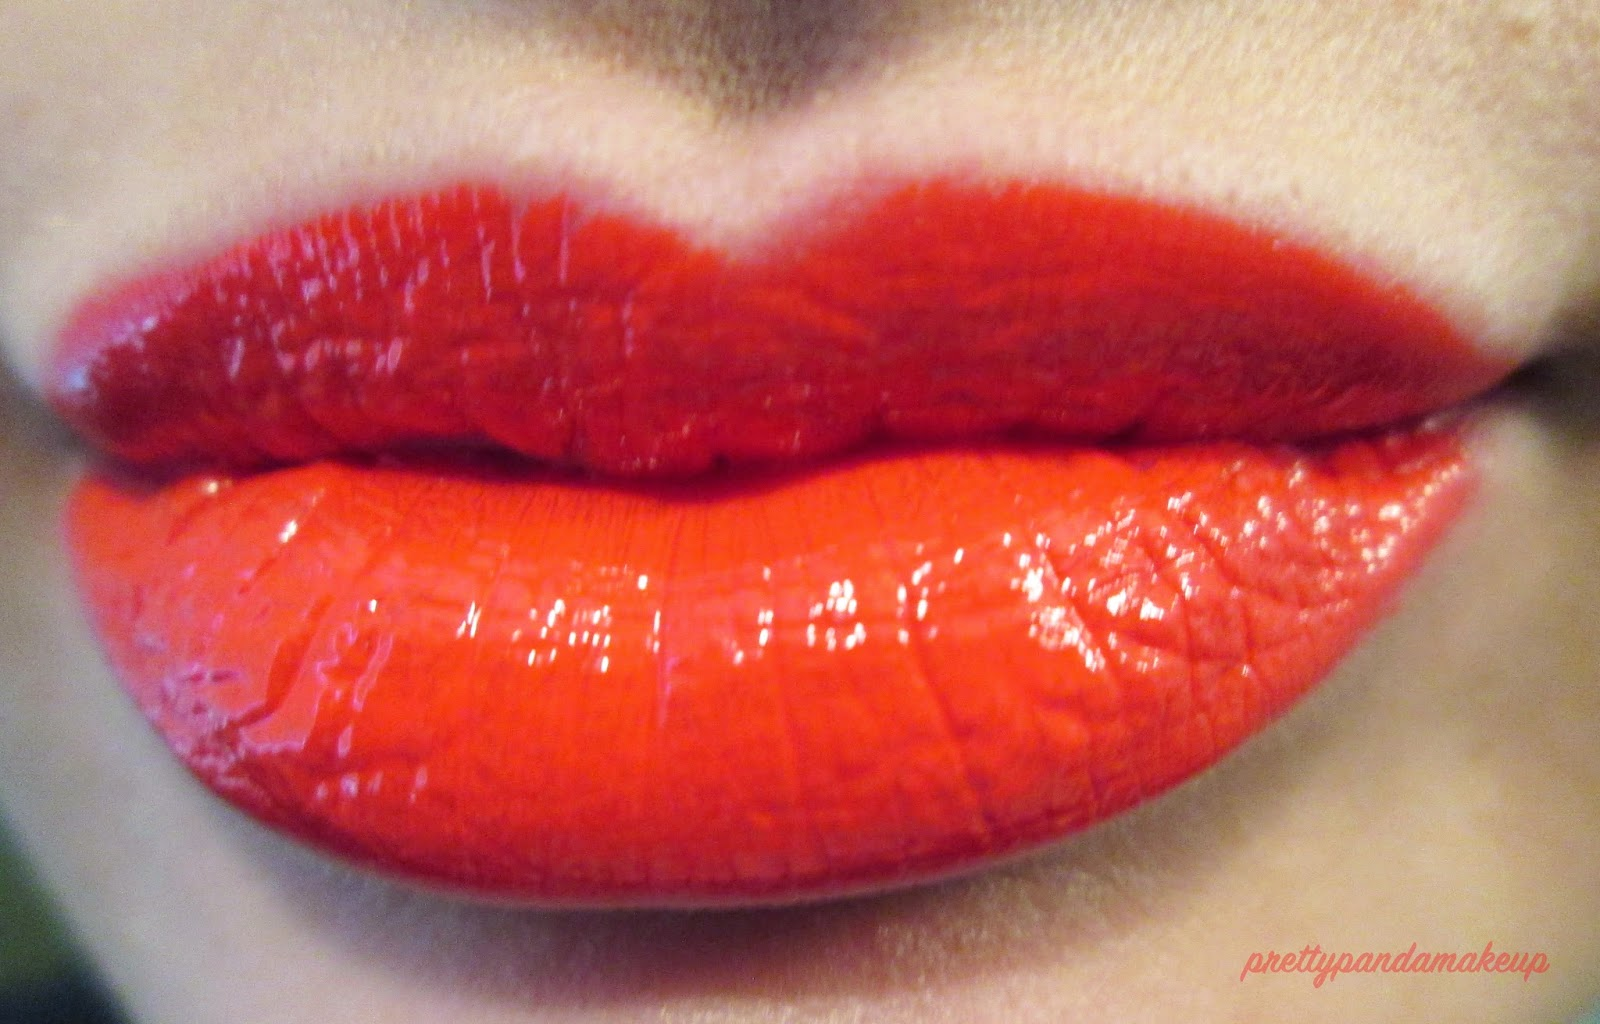 NYX Intense Butter Gloss in Orangesicle